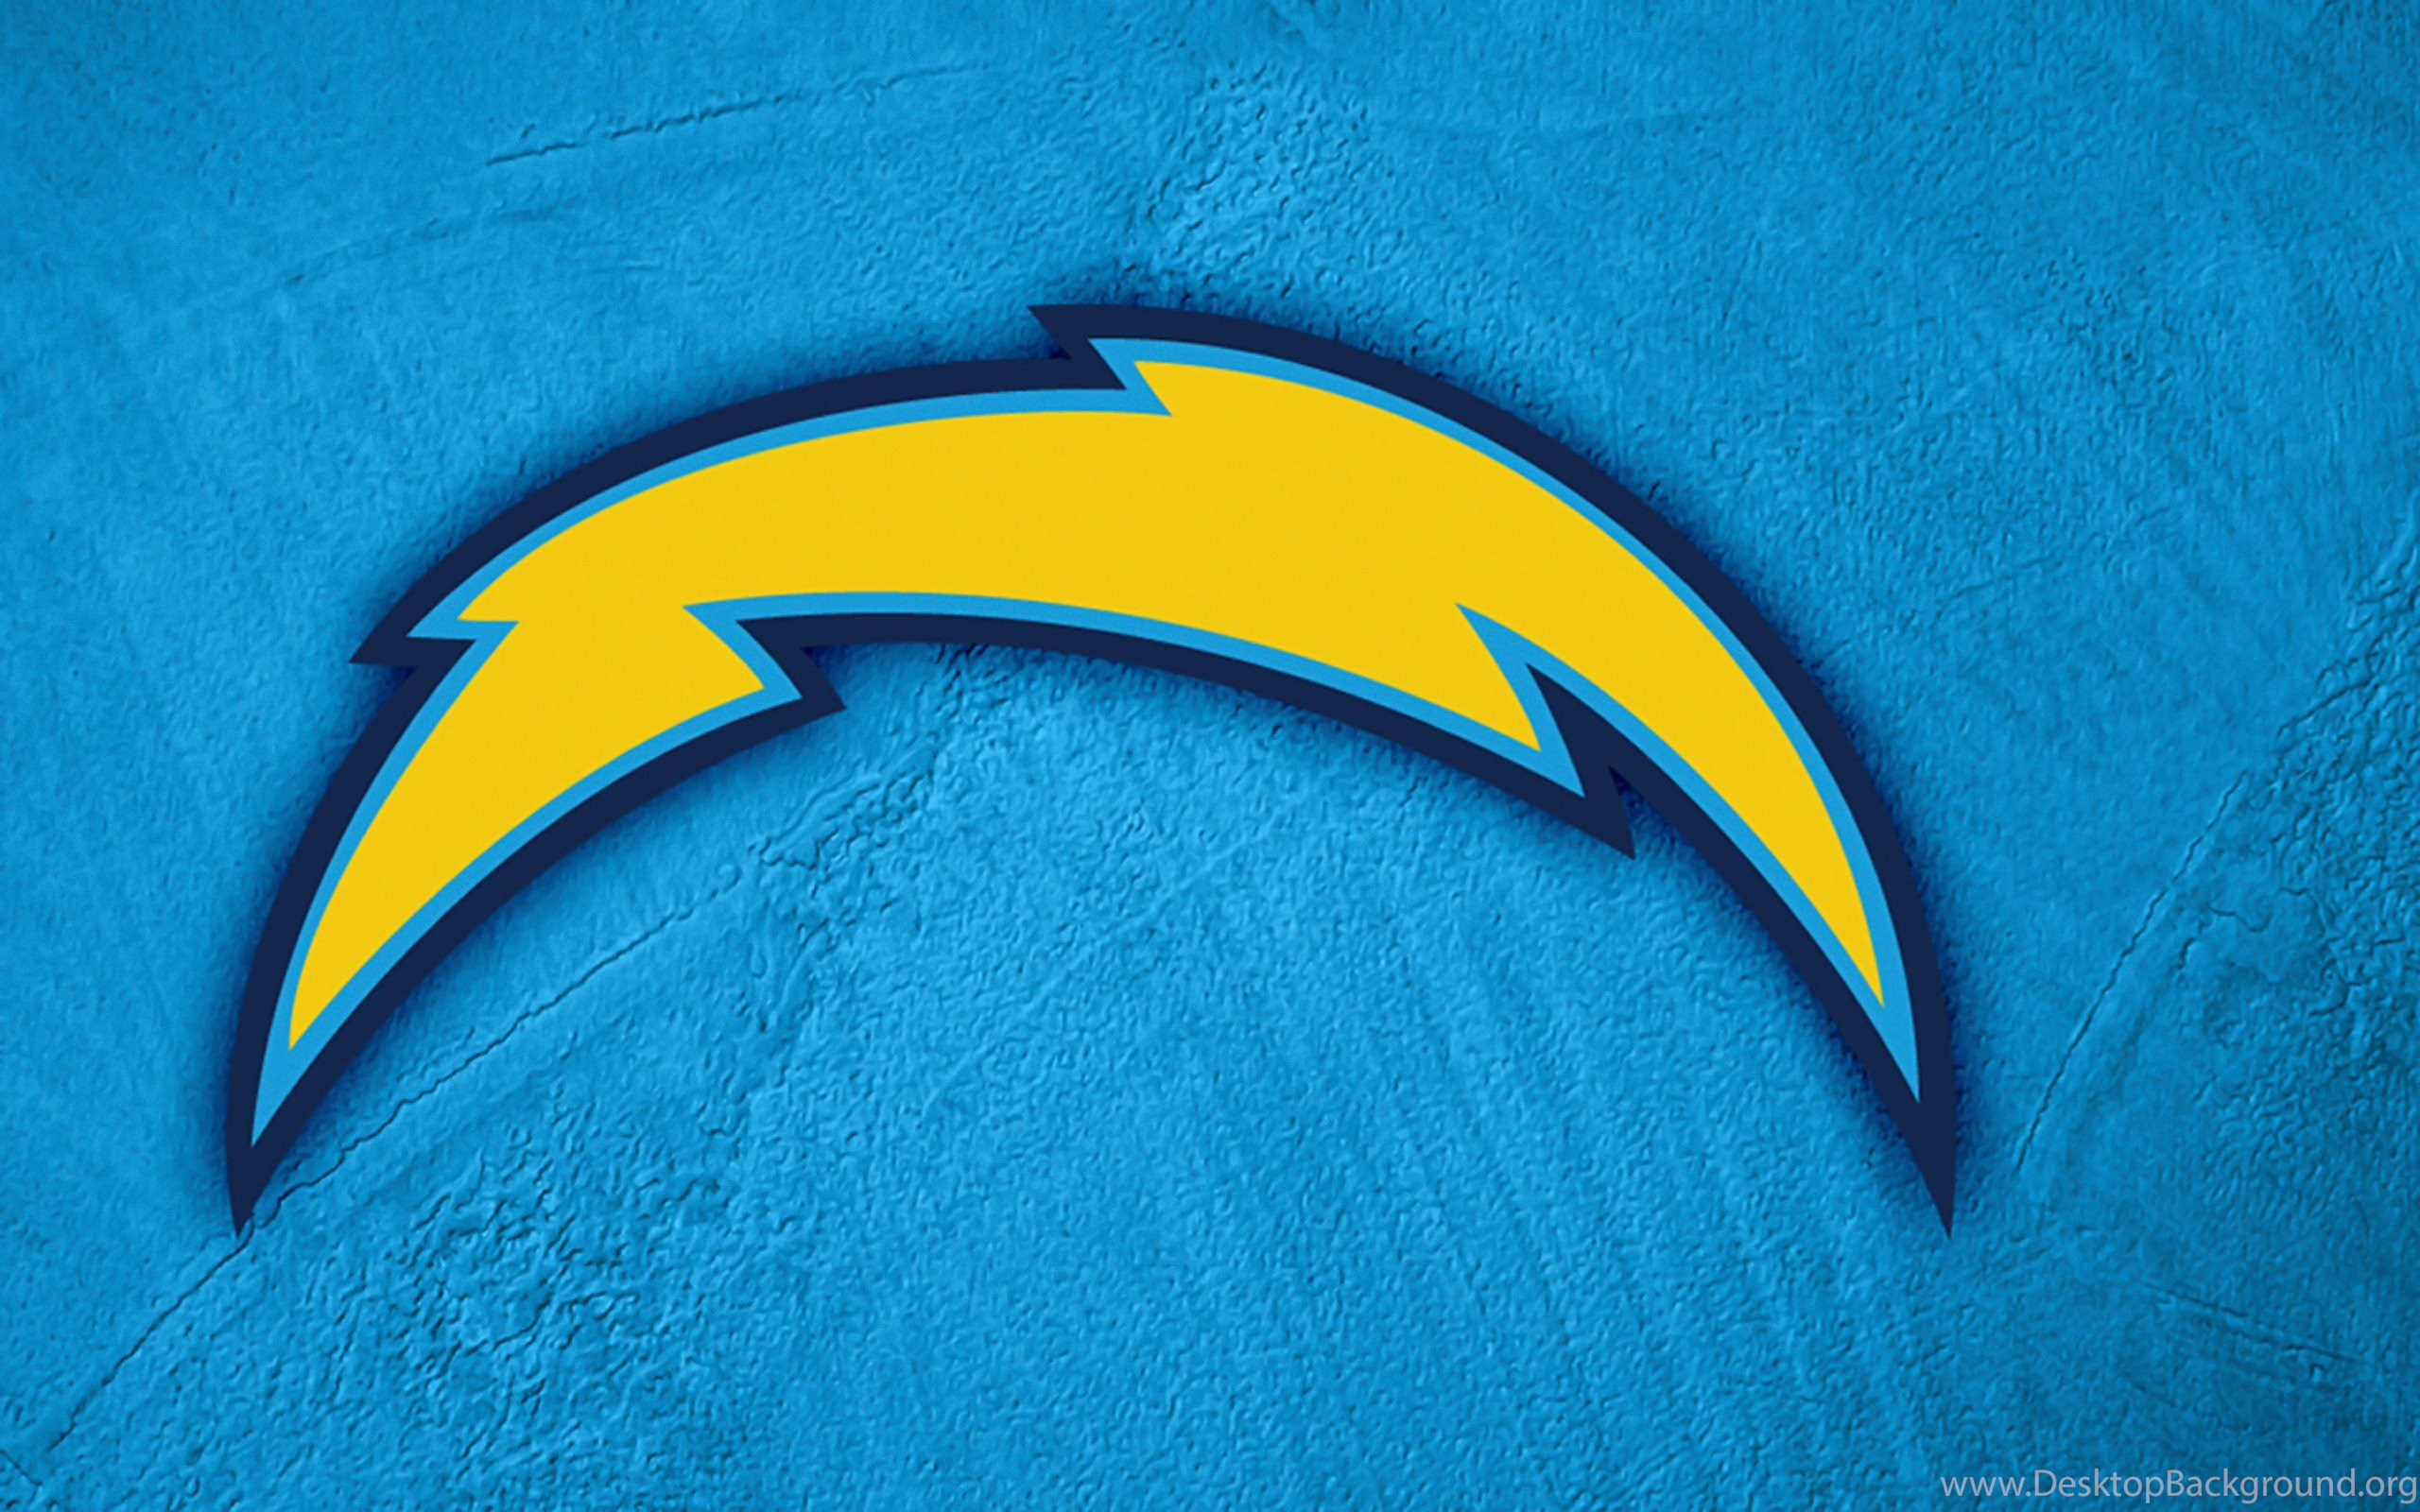 35 San Diego Chargers Hd Wallpapers Desktop Background